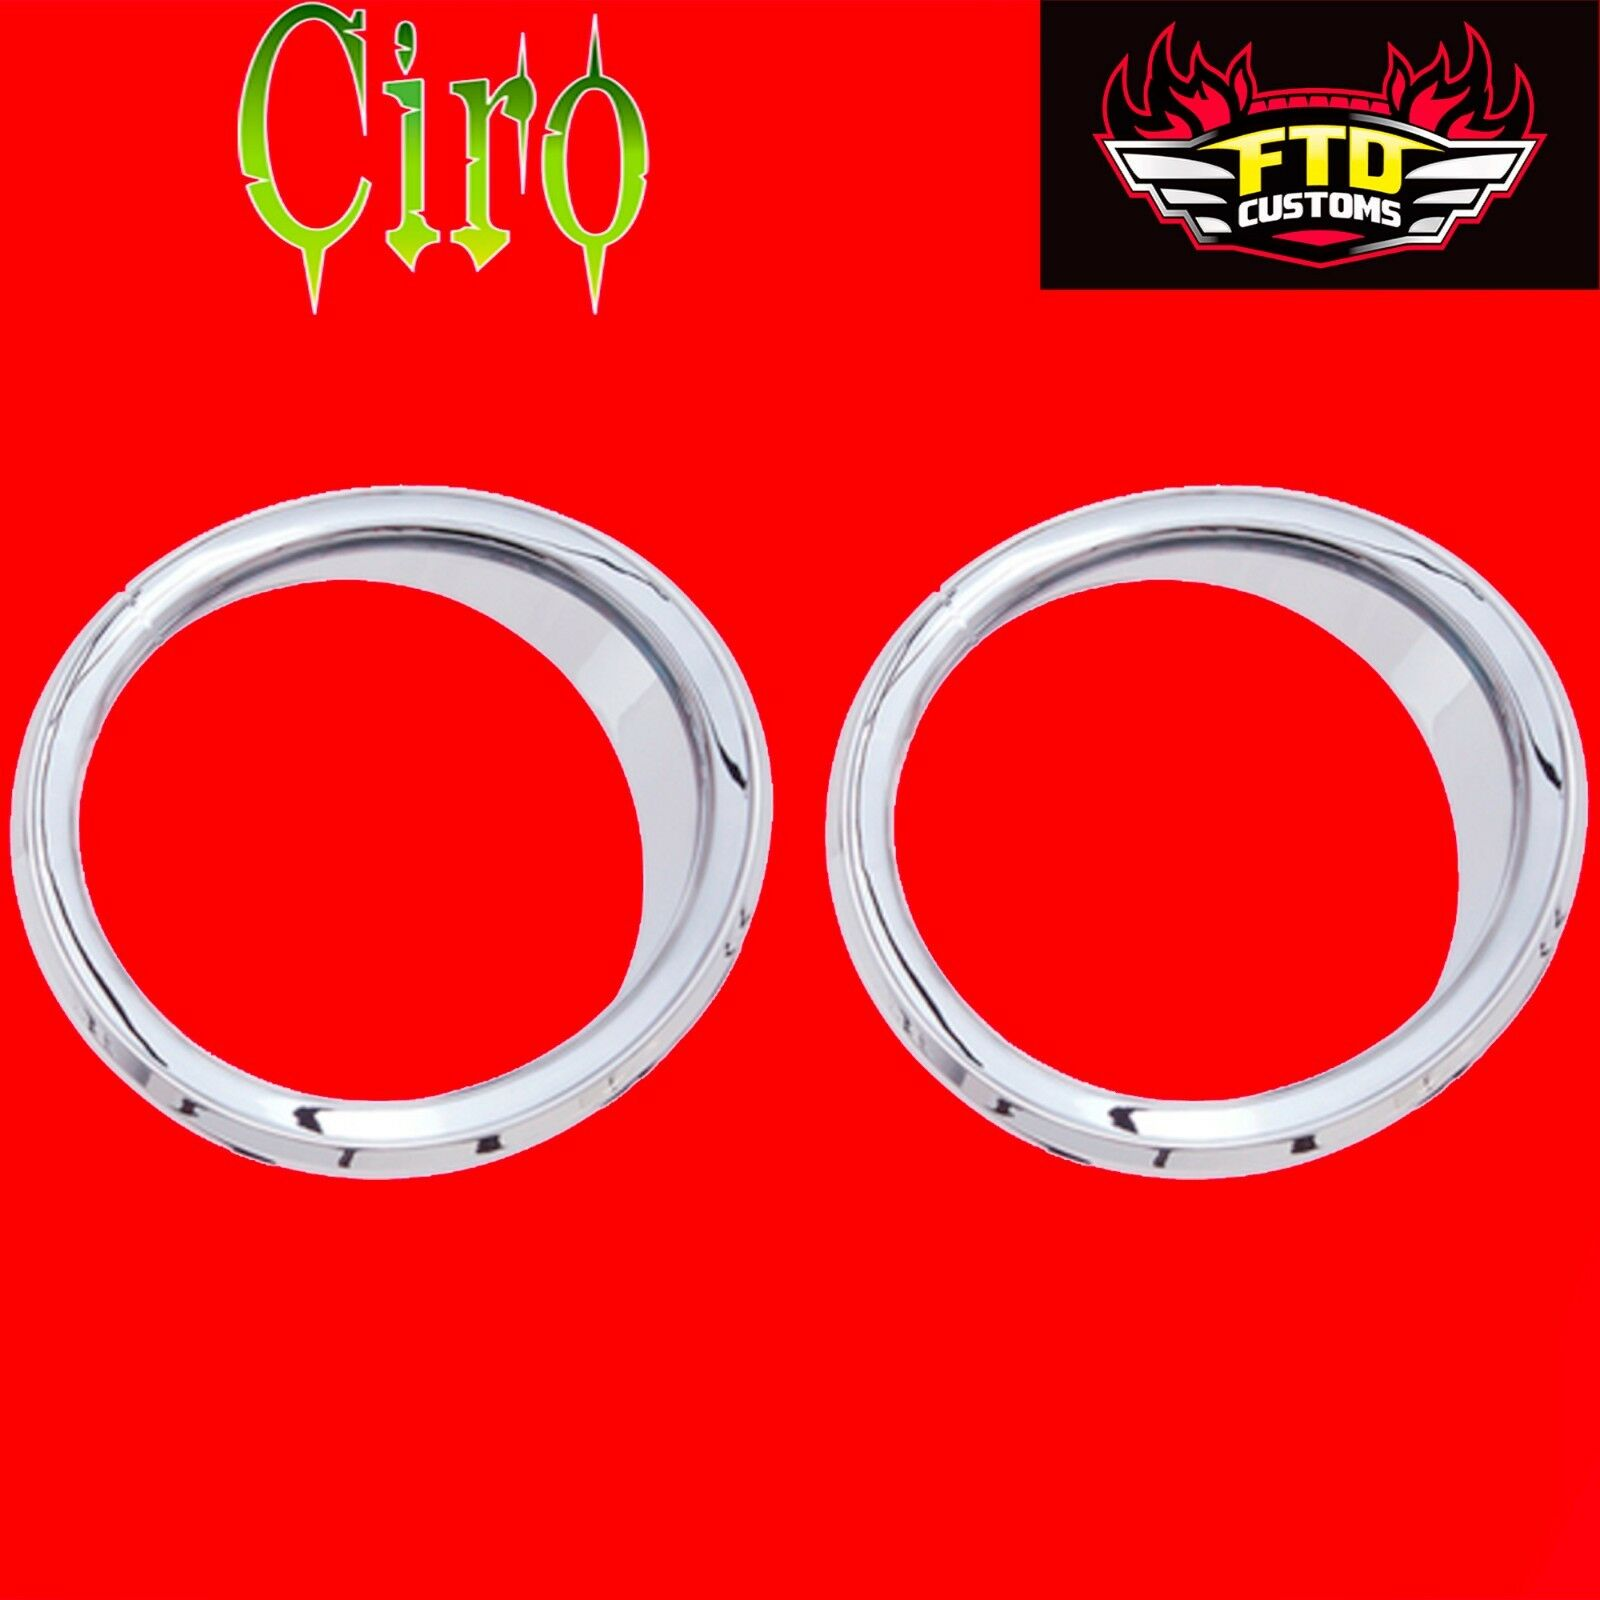 Motorcycle Accessories Vehicle Parts & Accessories Ciro Chrome LED Front Speaker Bezels Accents for Harley Batwing FLH/T 14-16